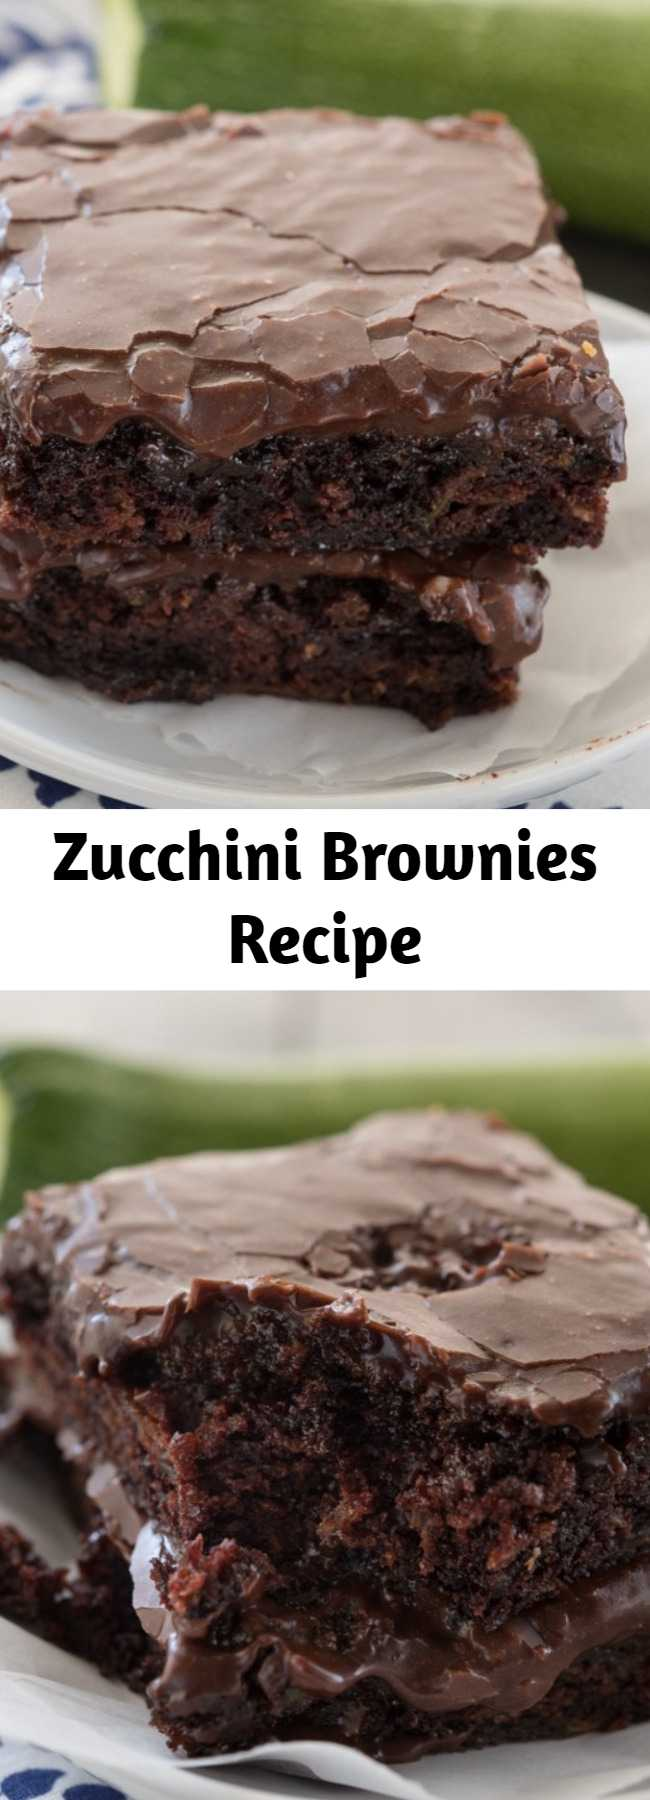 Zucchini Brownies Recipe - Zucchini brownies are a healthier recipe for brownies, and these are the BEST zucchini brownies ever! They're ooey, gooey, and SUPER fudgy brownies. And NO one will know they have zucchini inside!